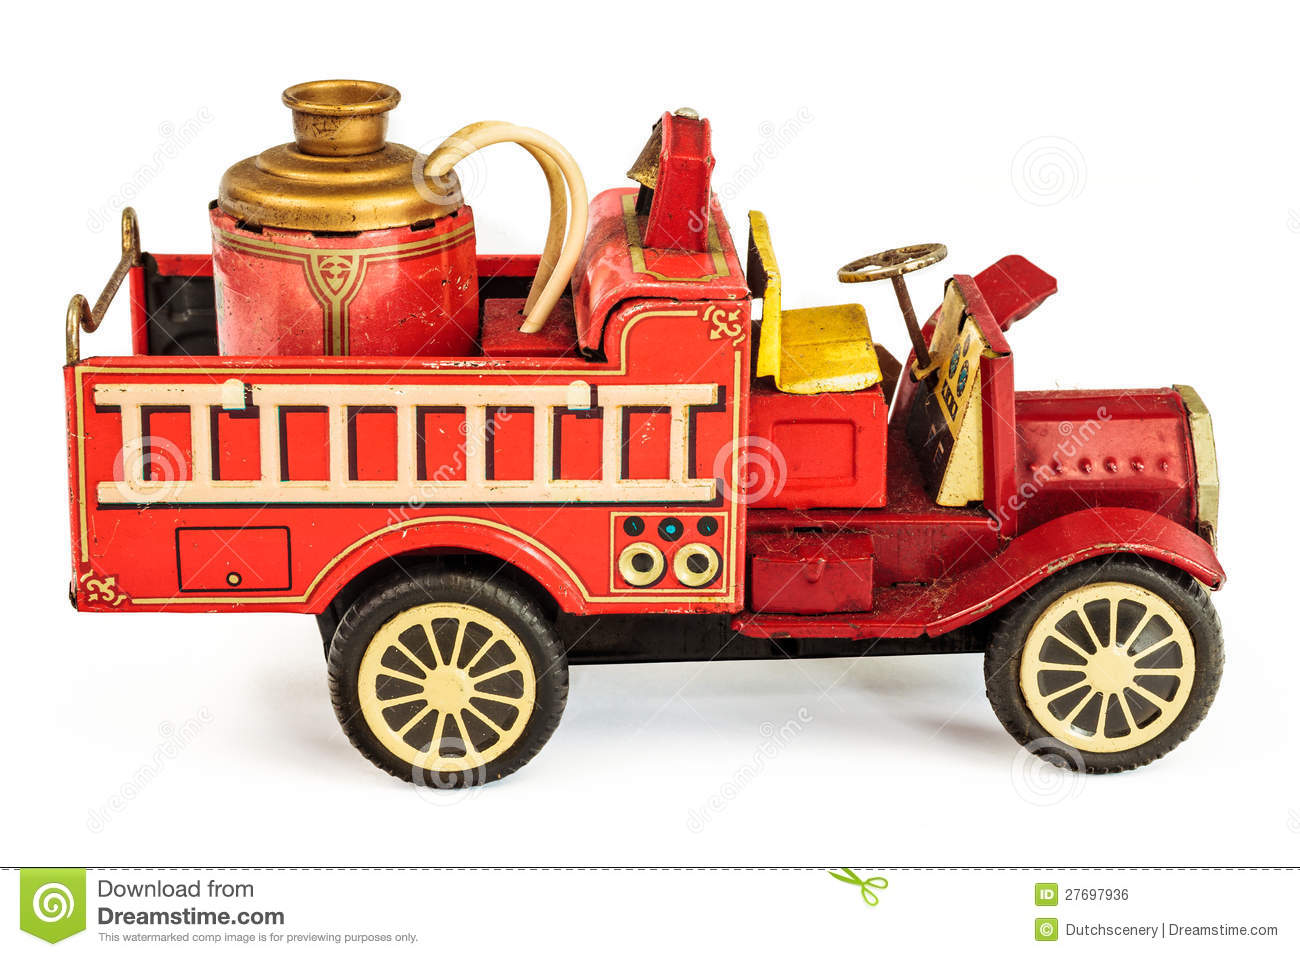 Toy fire truck clipart.